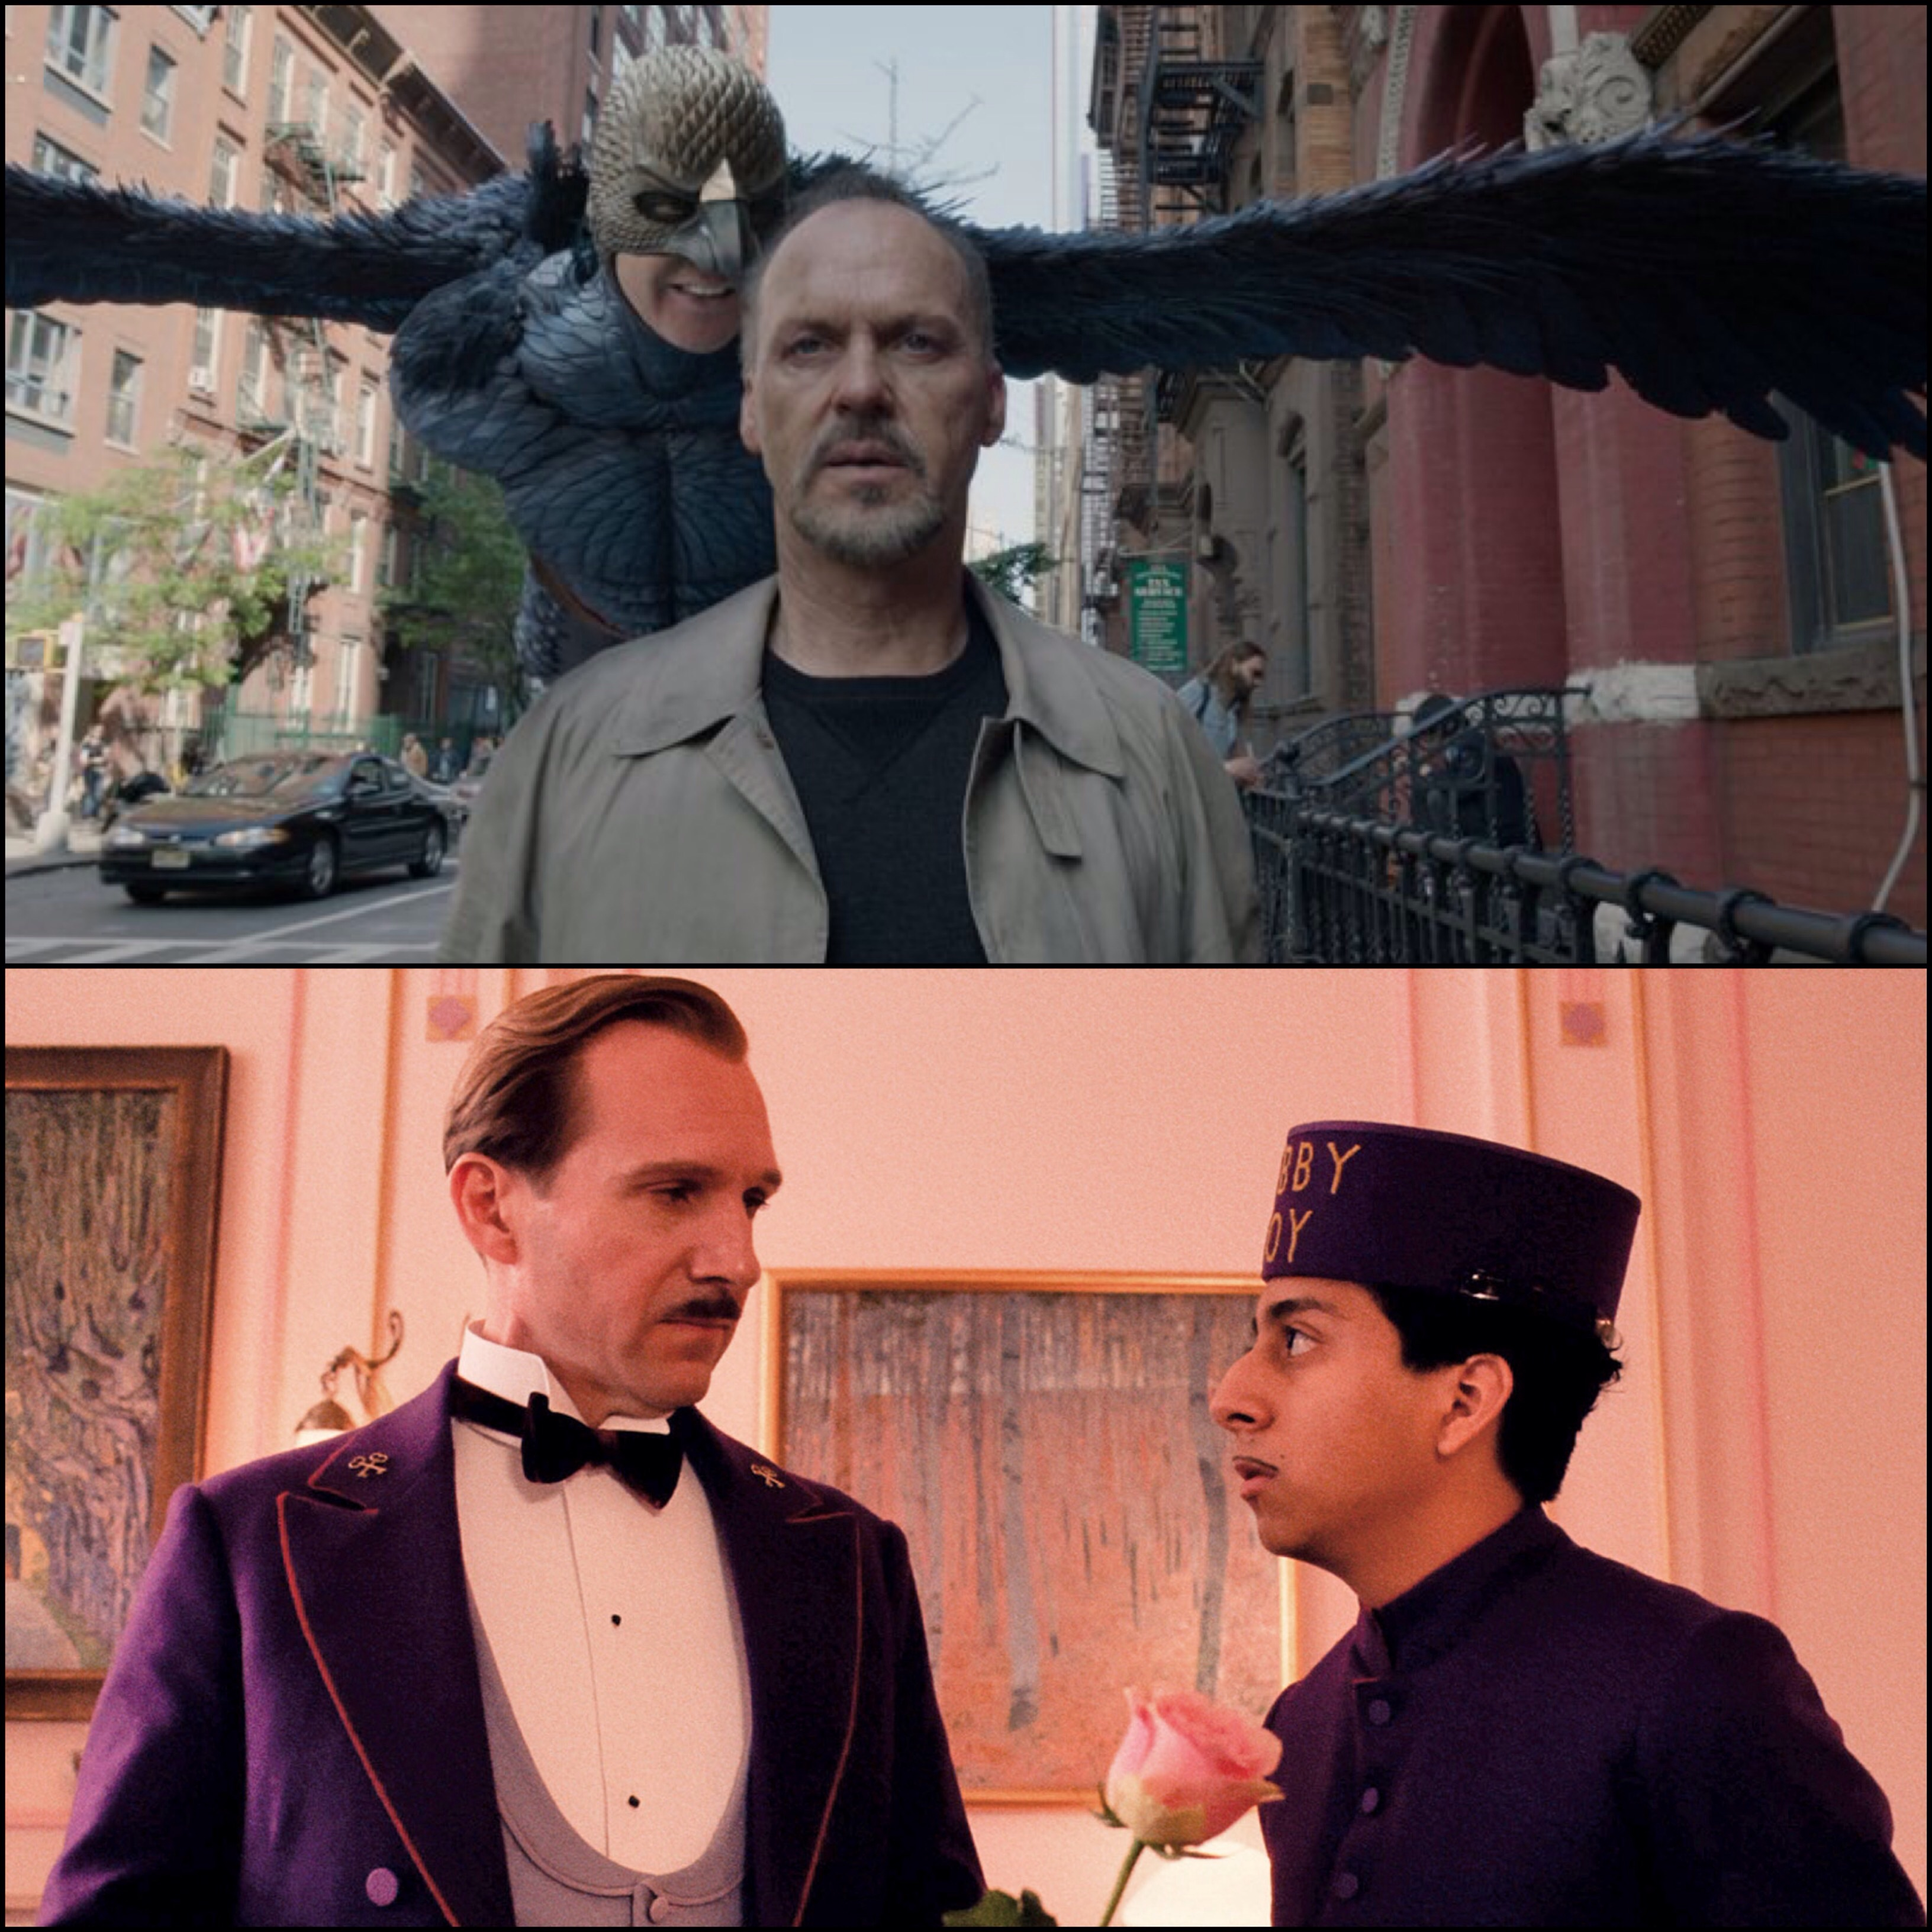 Birdman and The Grand Budapest Hotel Lead Oscar Nominations 2015